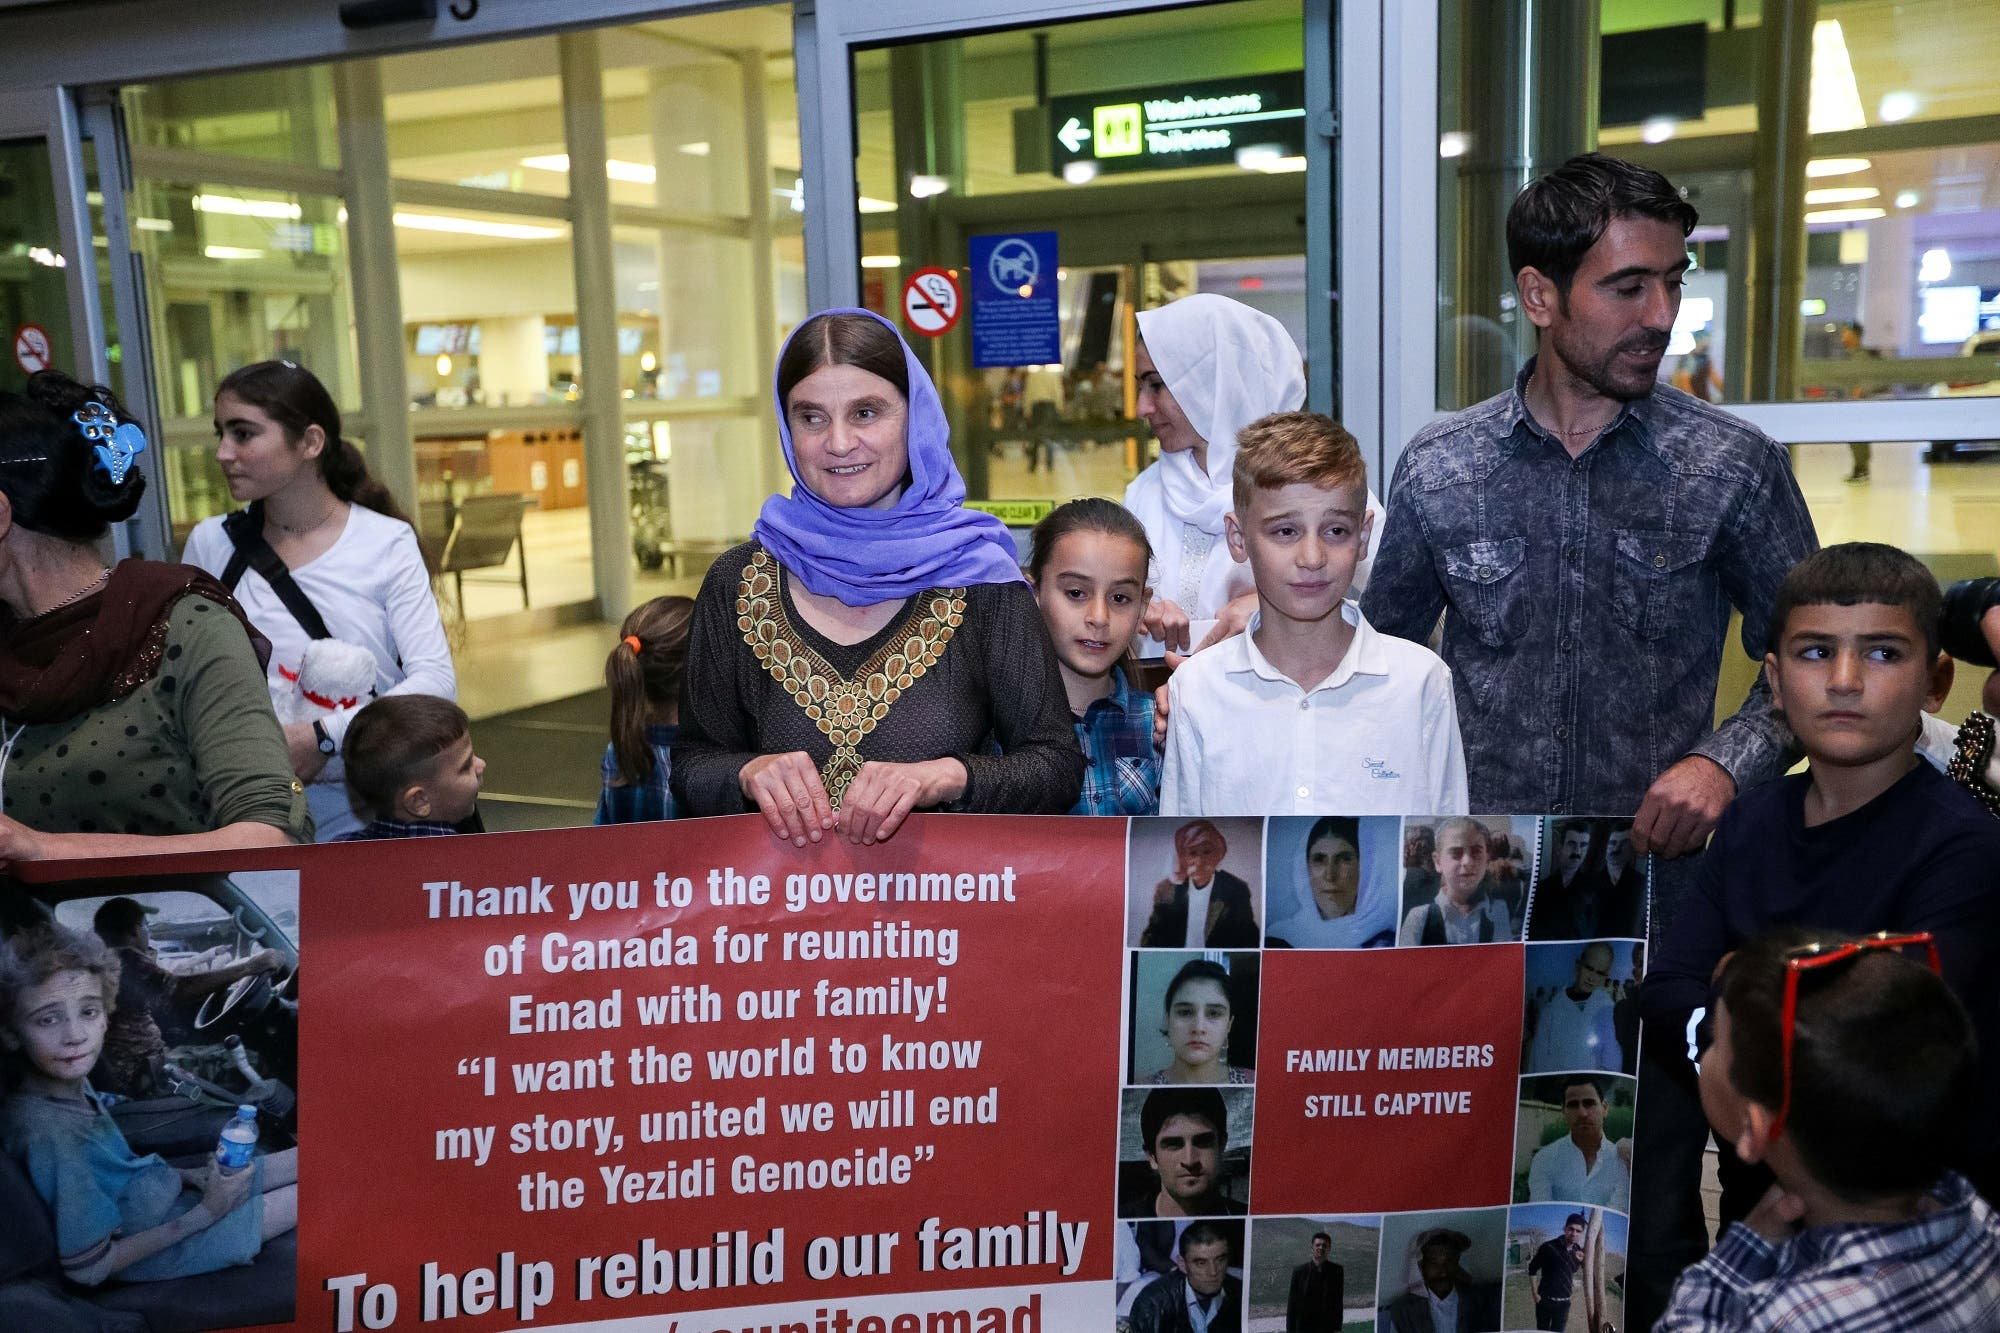 Imad Mishko Tammo, 12-year-old Yazidi boy, who was separated from his family after being captured by ISIS in Iraq, is reunited with his mother and siblings on arrival in Winnipeg, Manitoba, Canada, August 17, 2017. (Reuters)